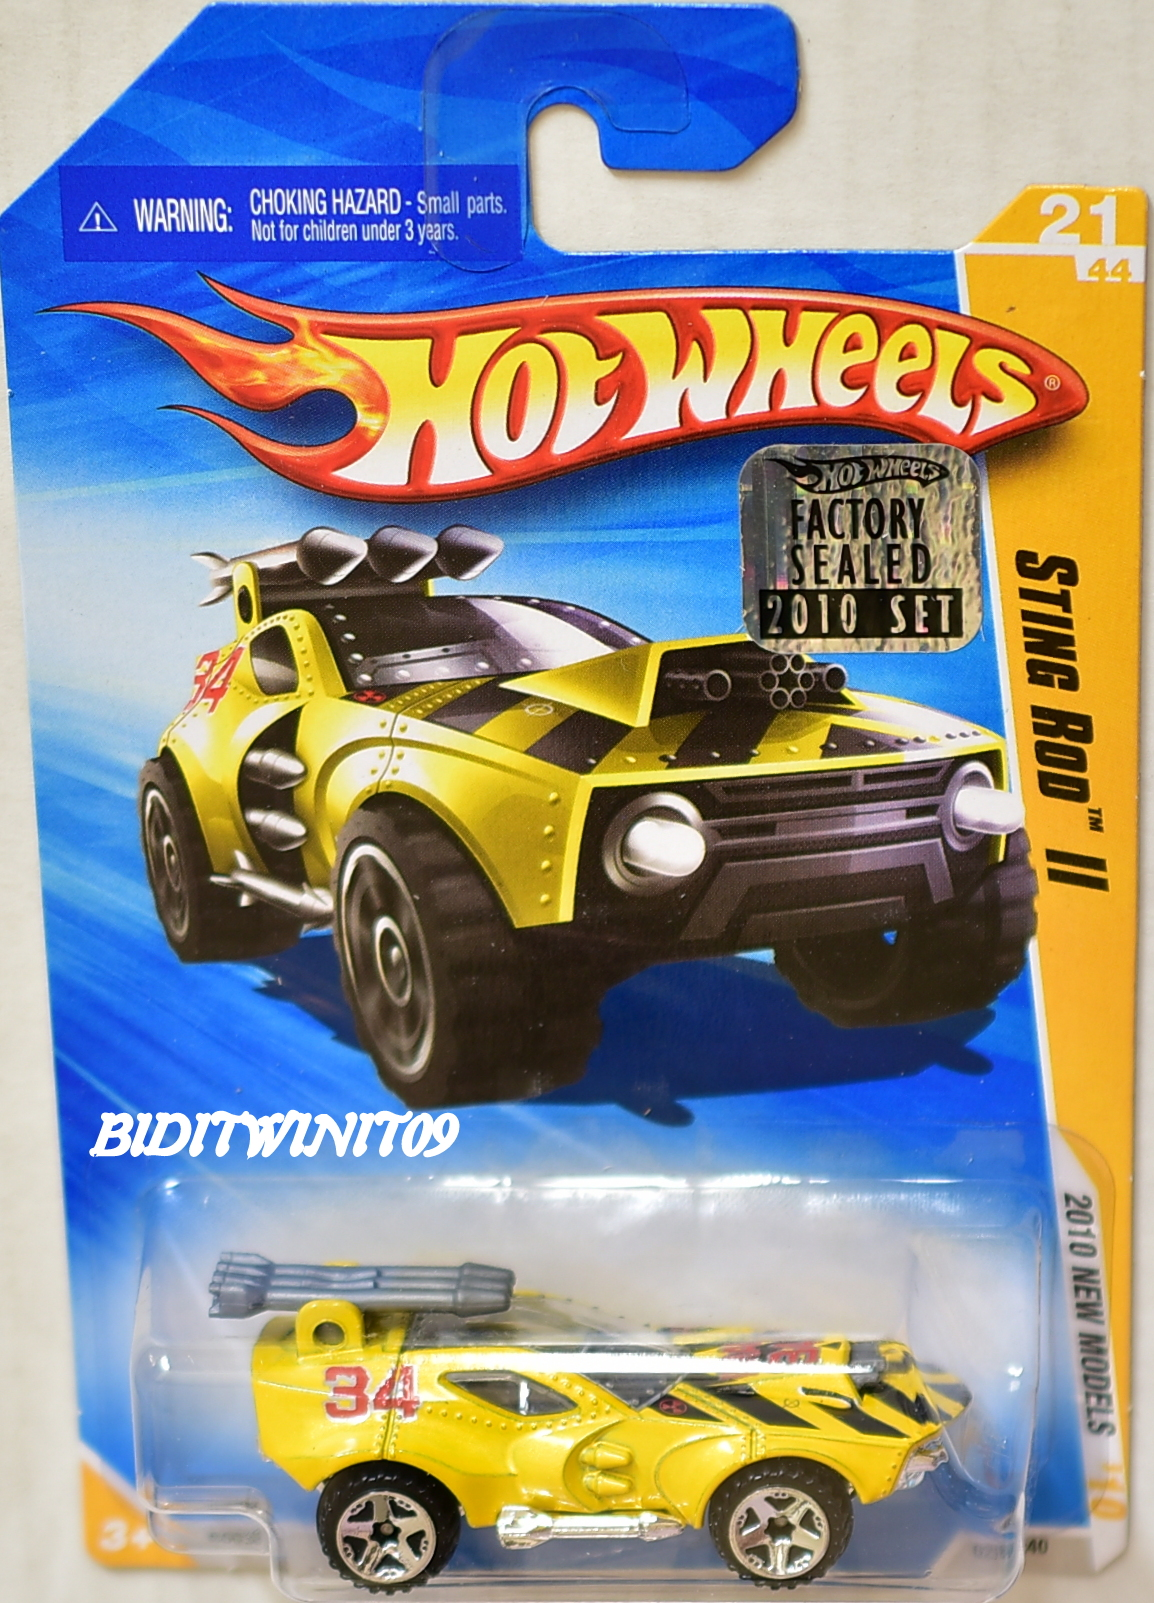 HOT WHEELS 2010 STING ROD II #21/44 NEW MODELS YELLOW FACTORY SEALED E+